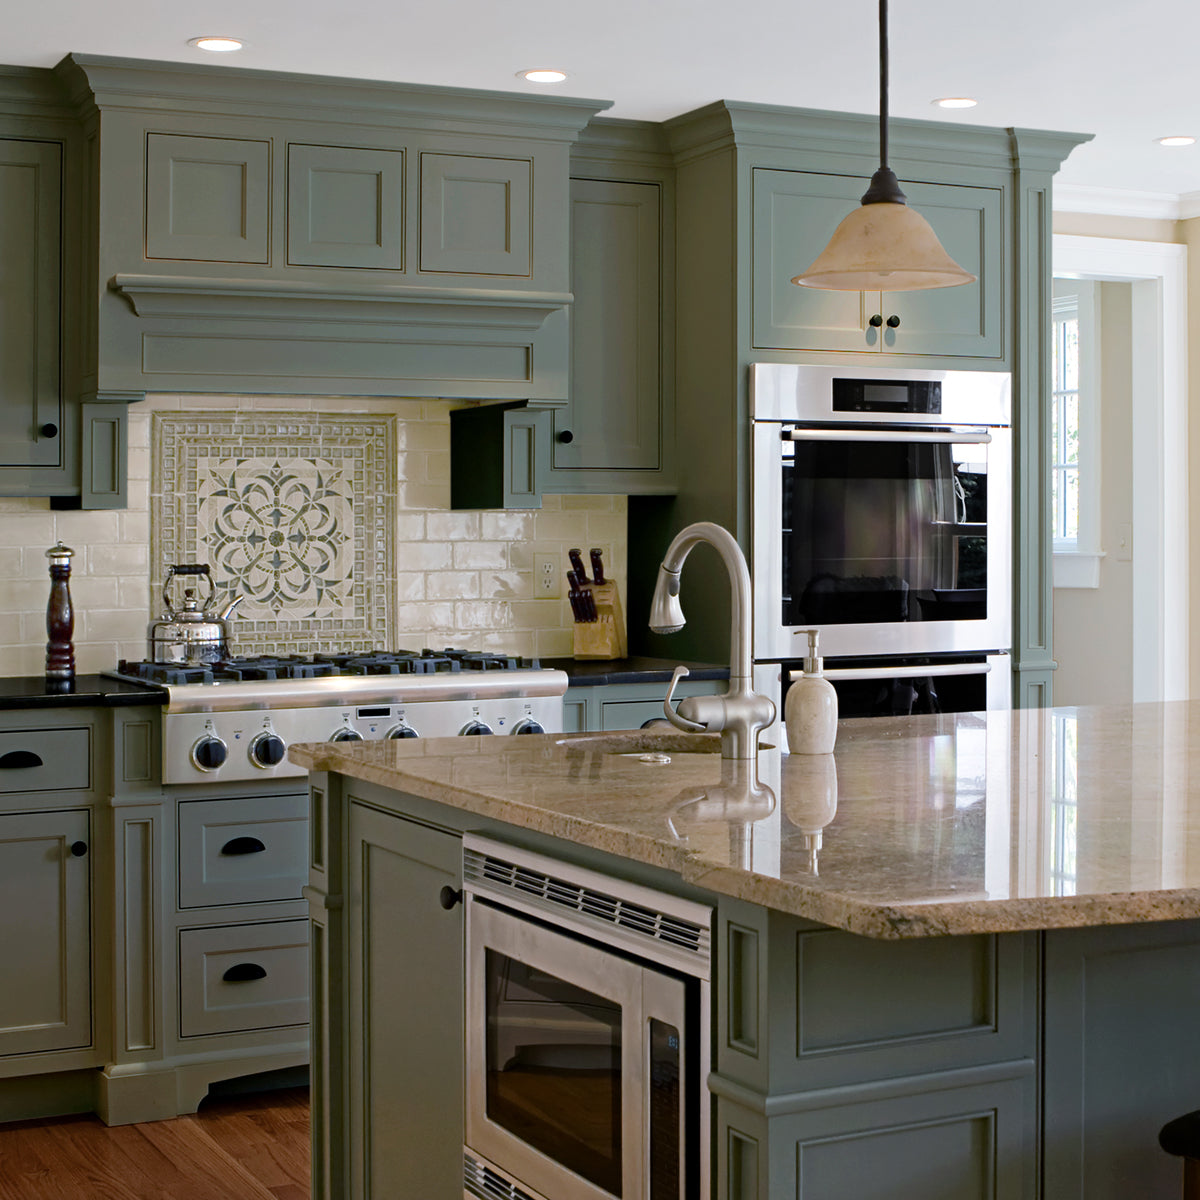 Nuvo Cabinet Paint By Giani Inc Www Nuvocabinetpaint Com Love My Nuvo Painting Cabinets Nuvo Cabinet Paint Clean Kitchen Cabinets